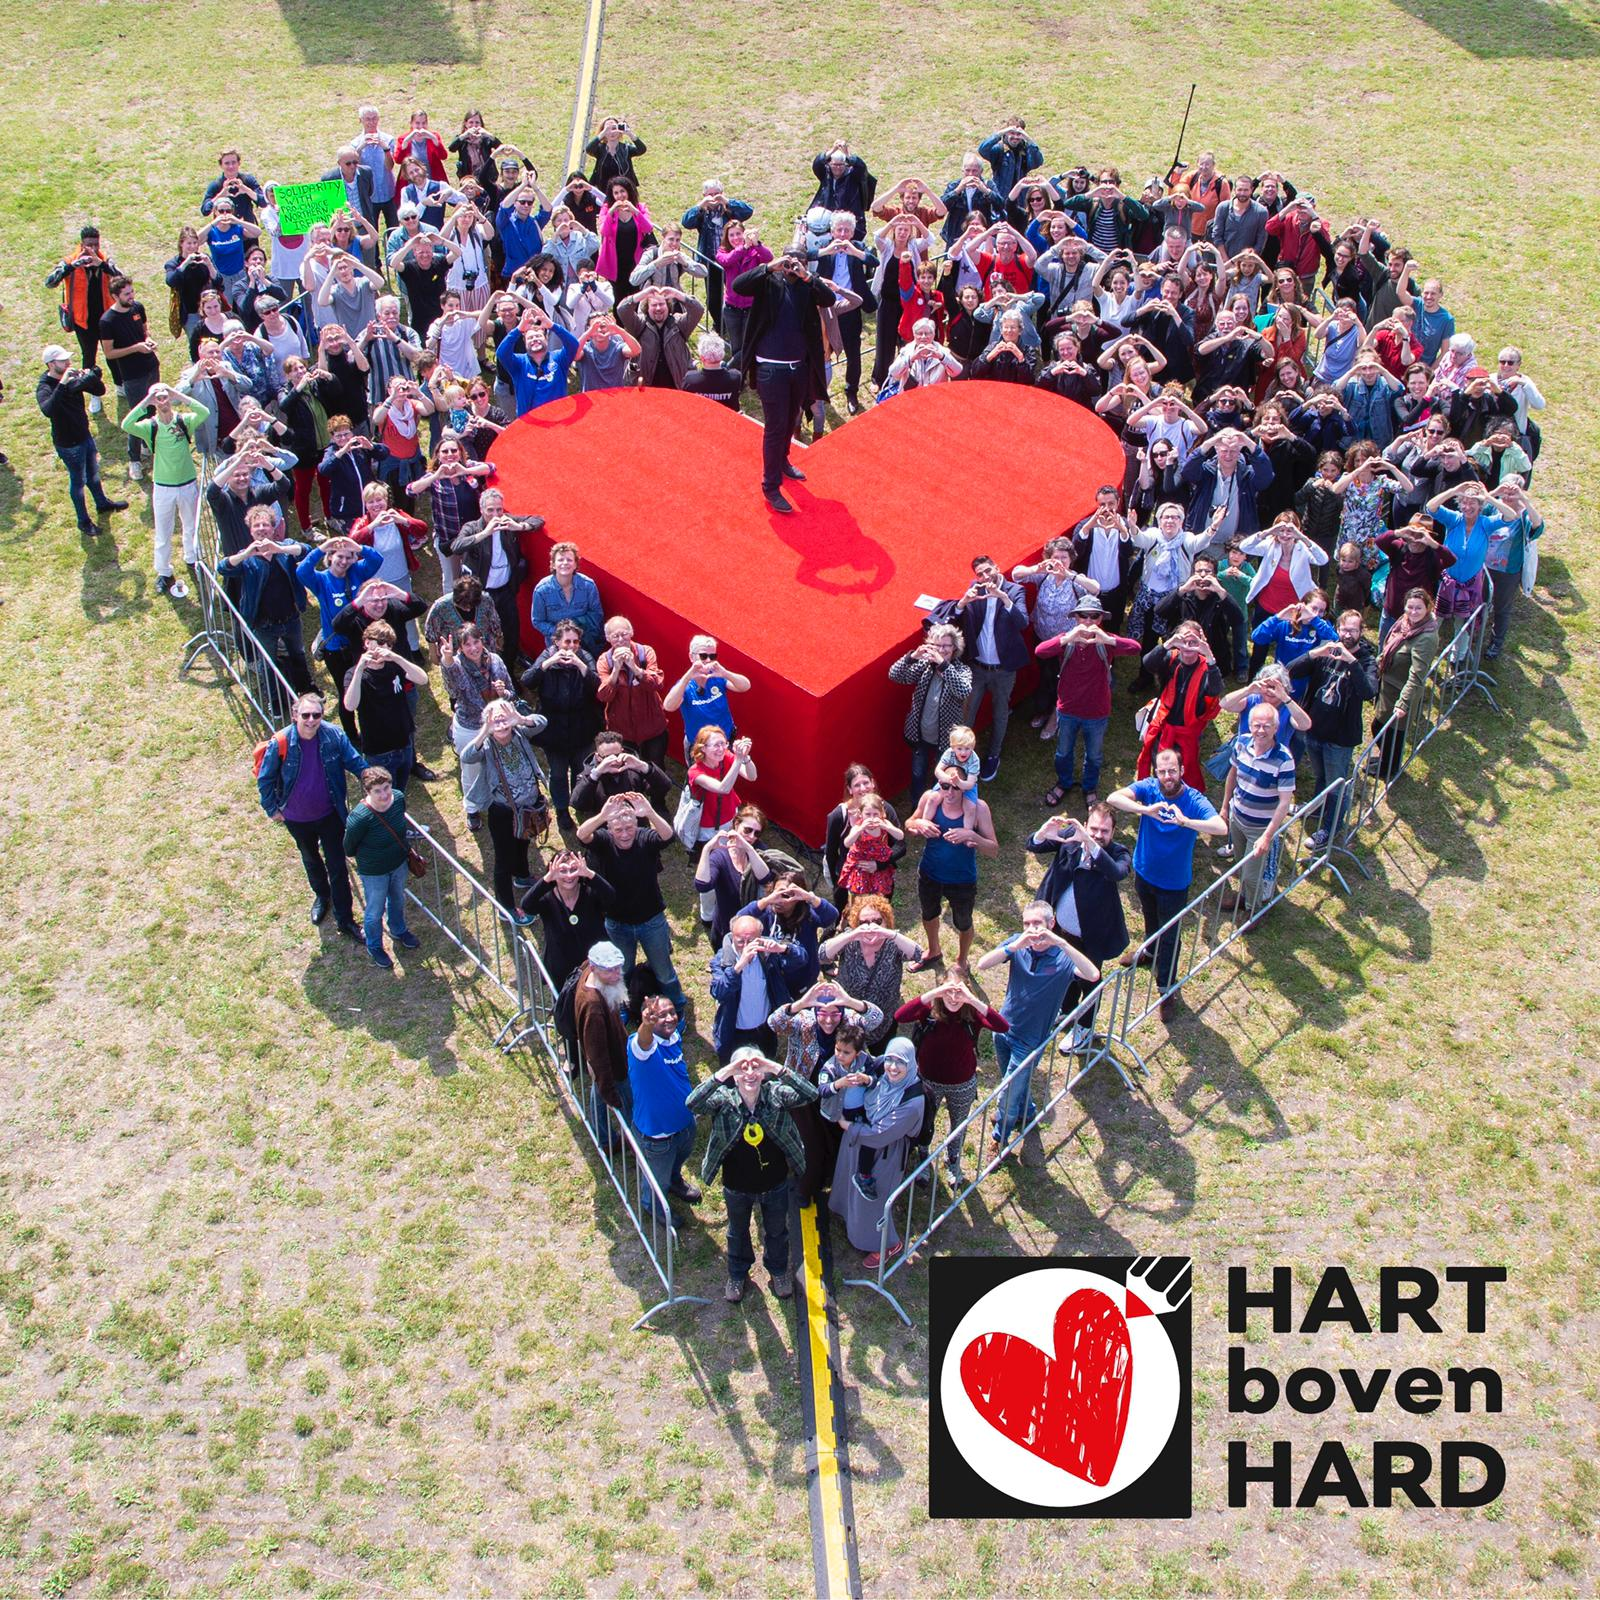 In Utrecht, in the Netherlands, the alliance came together around one manifesto - 'Hart boven hard' or hearts over hard - they had never done that before and it looks like this one will last well beyond the elections.